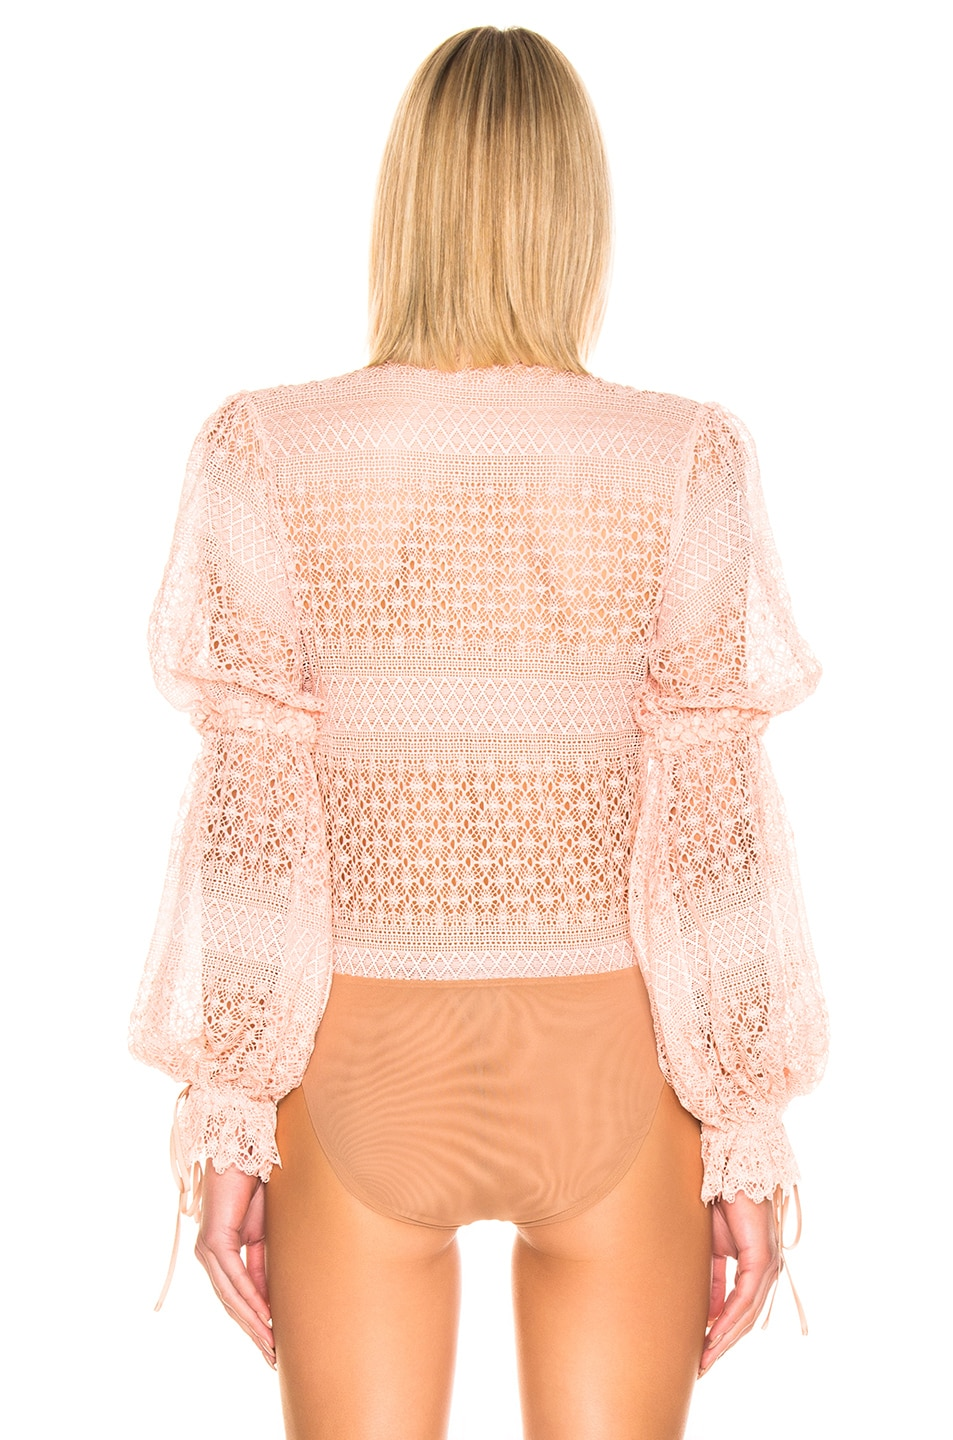 Image 4 of JONATHAN SIMKHAI Mixed Knit Lace Mock Neck Bodysuit in Cherry Blossom